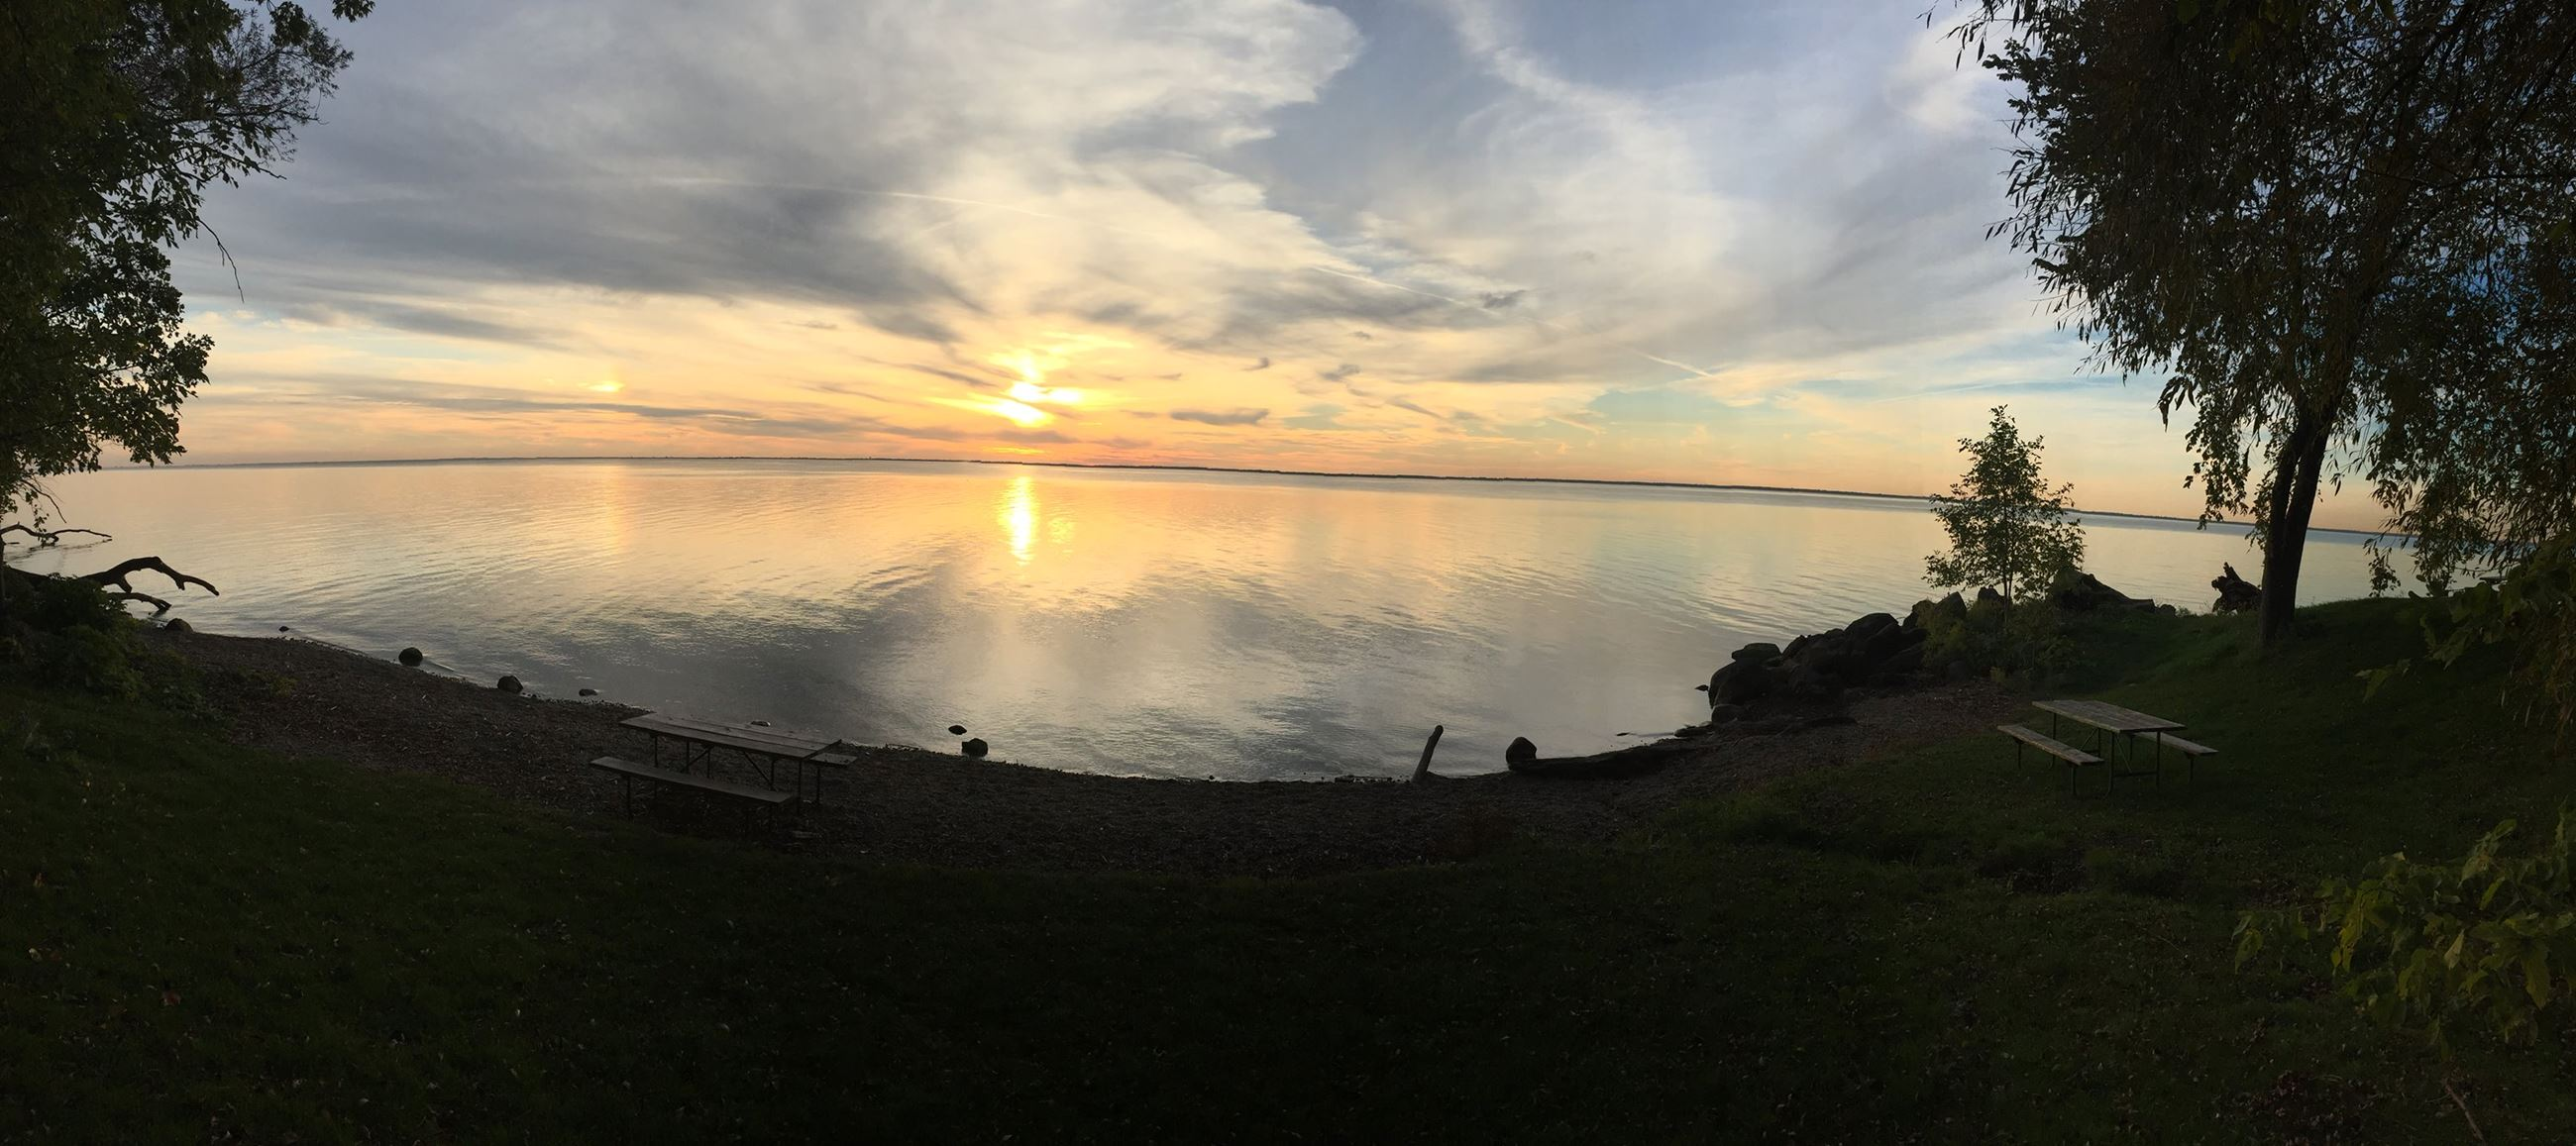 Sunset over Lake Winnebago.